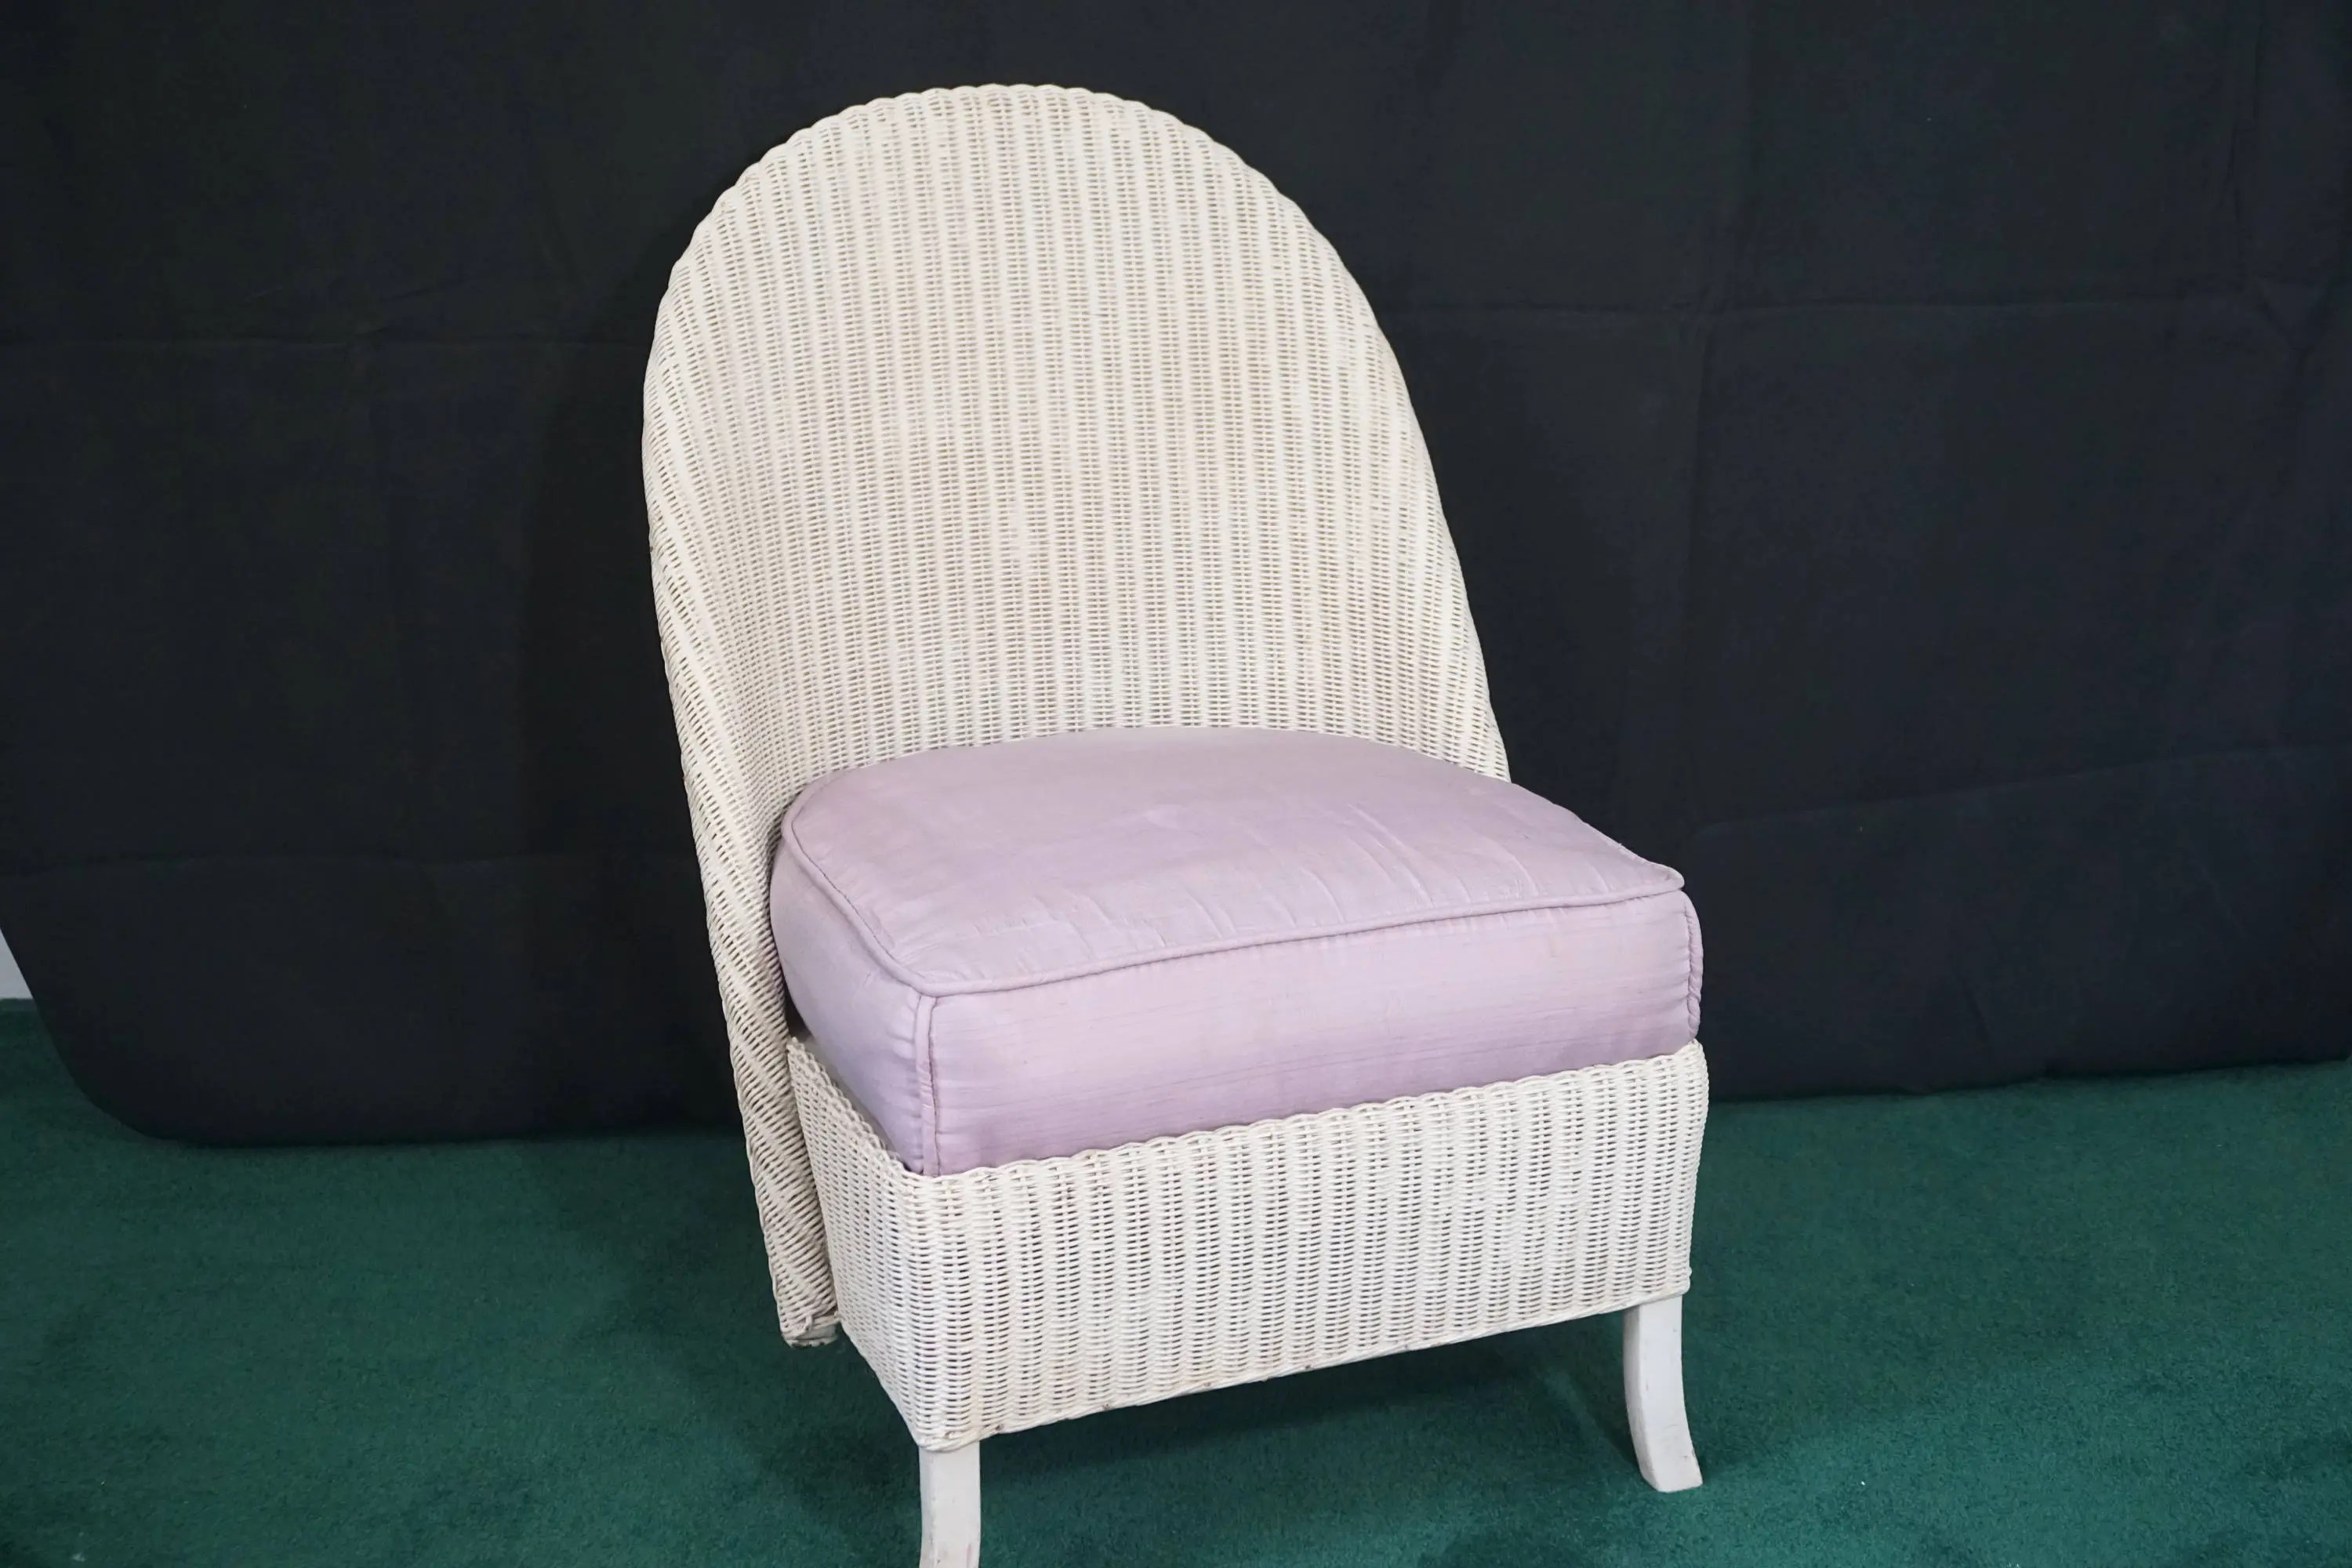 childs rattan chair stools with backs kids wicker etsy antique vintage white slipper back seat nursery furniture porch sun room child s spring cushion